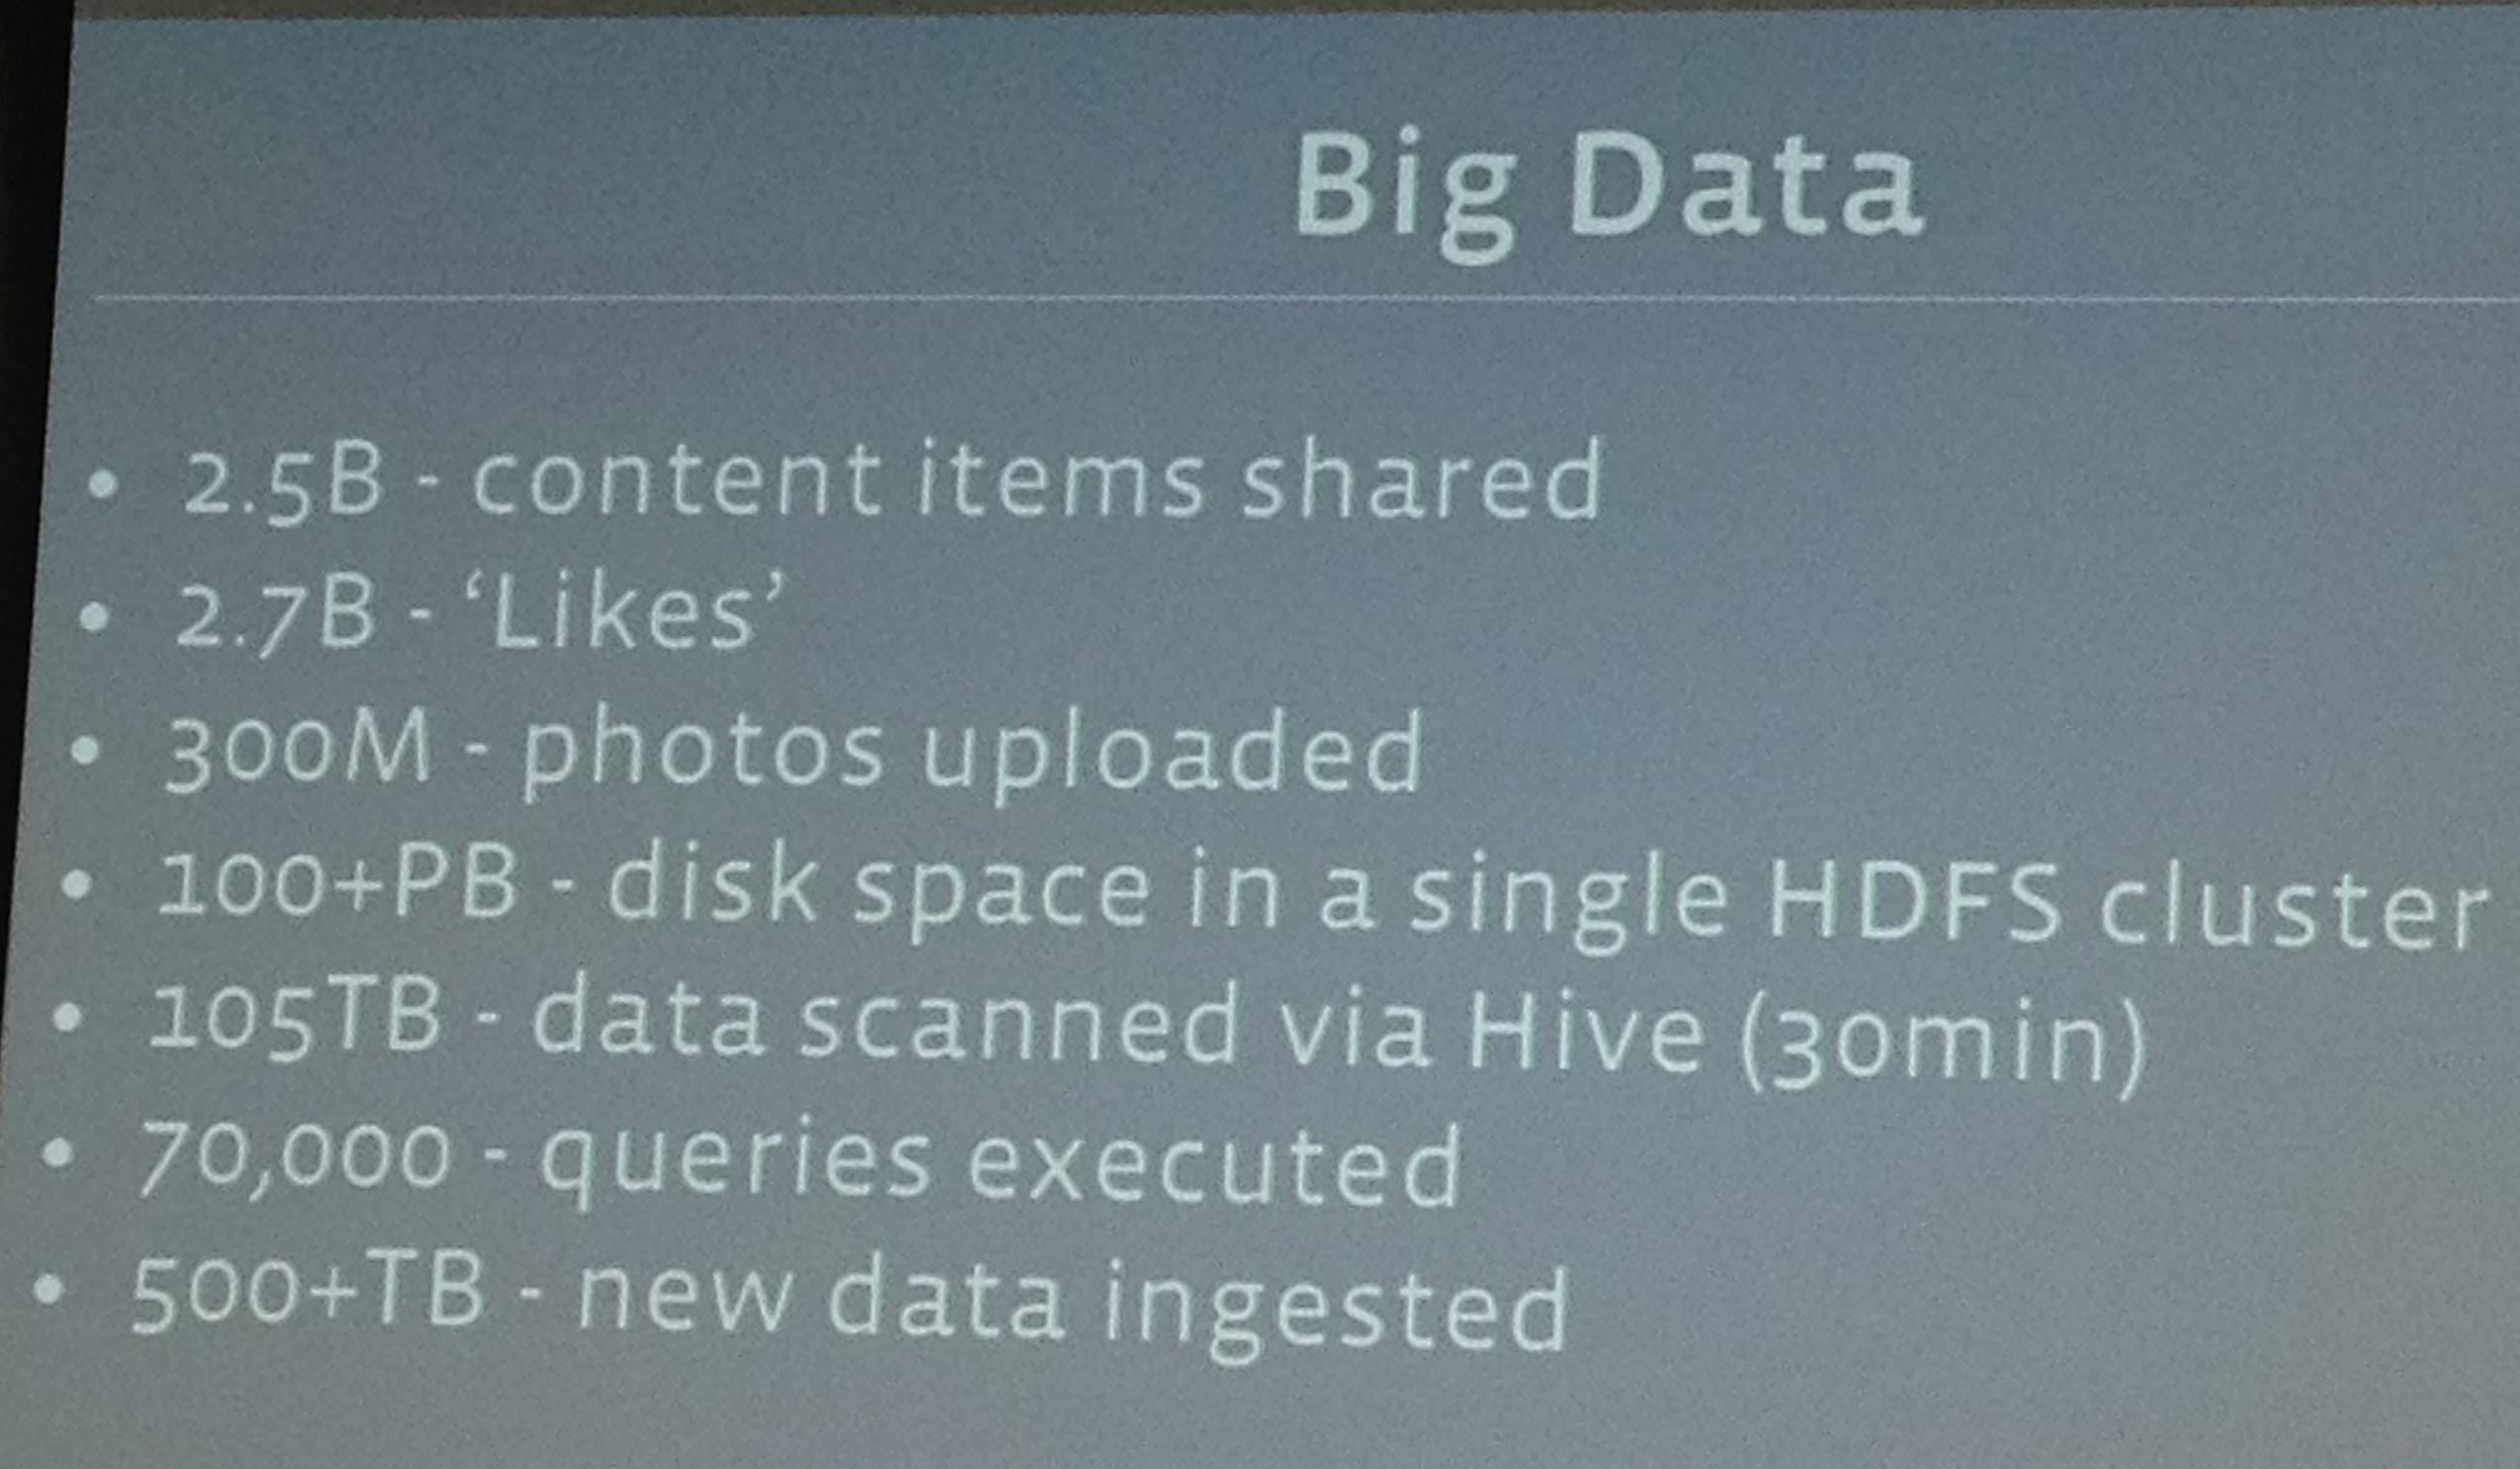 How Big Is Facebook's Data? 2 5 Billion Pieces Of Content And 500+